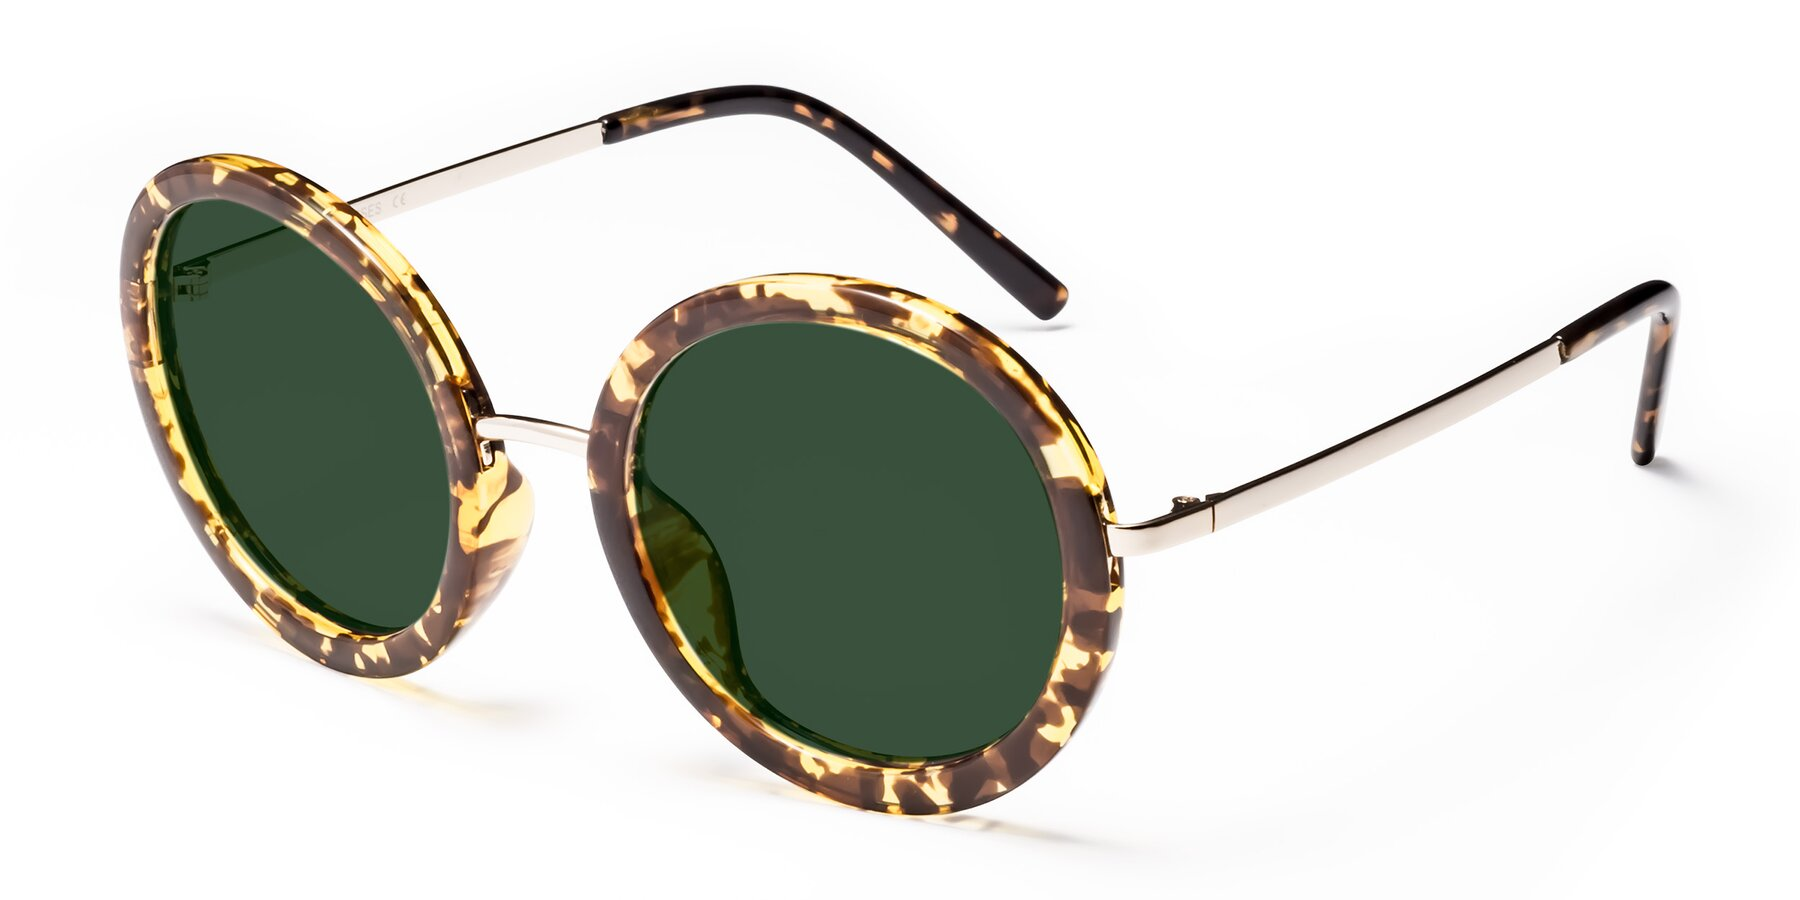 Angle of Bloom in Transparent Tortoise with Green Tinted Lenses